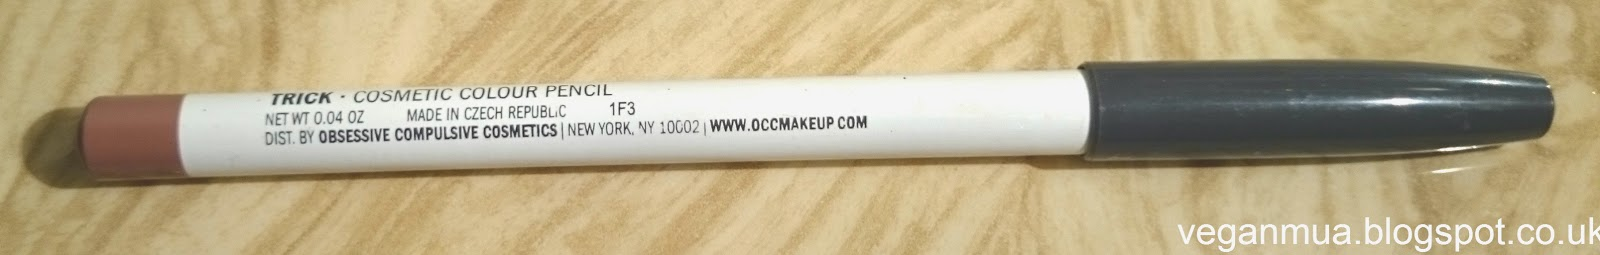 OCC Cosmetic Color Pencil in Trick